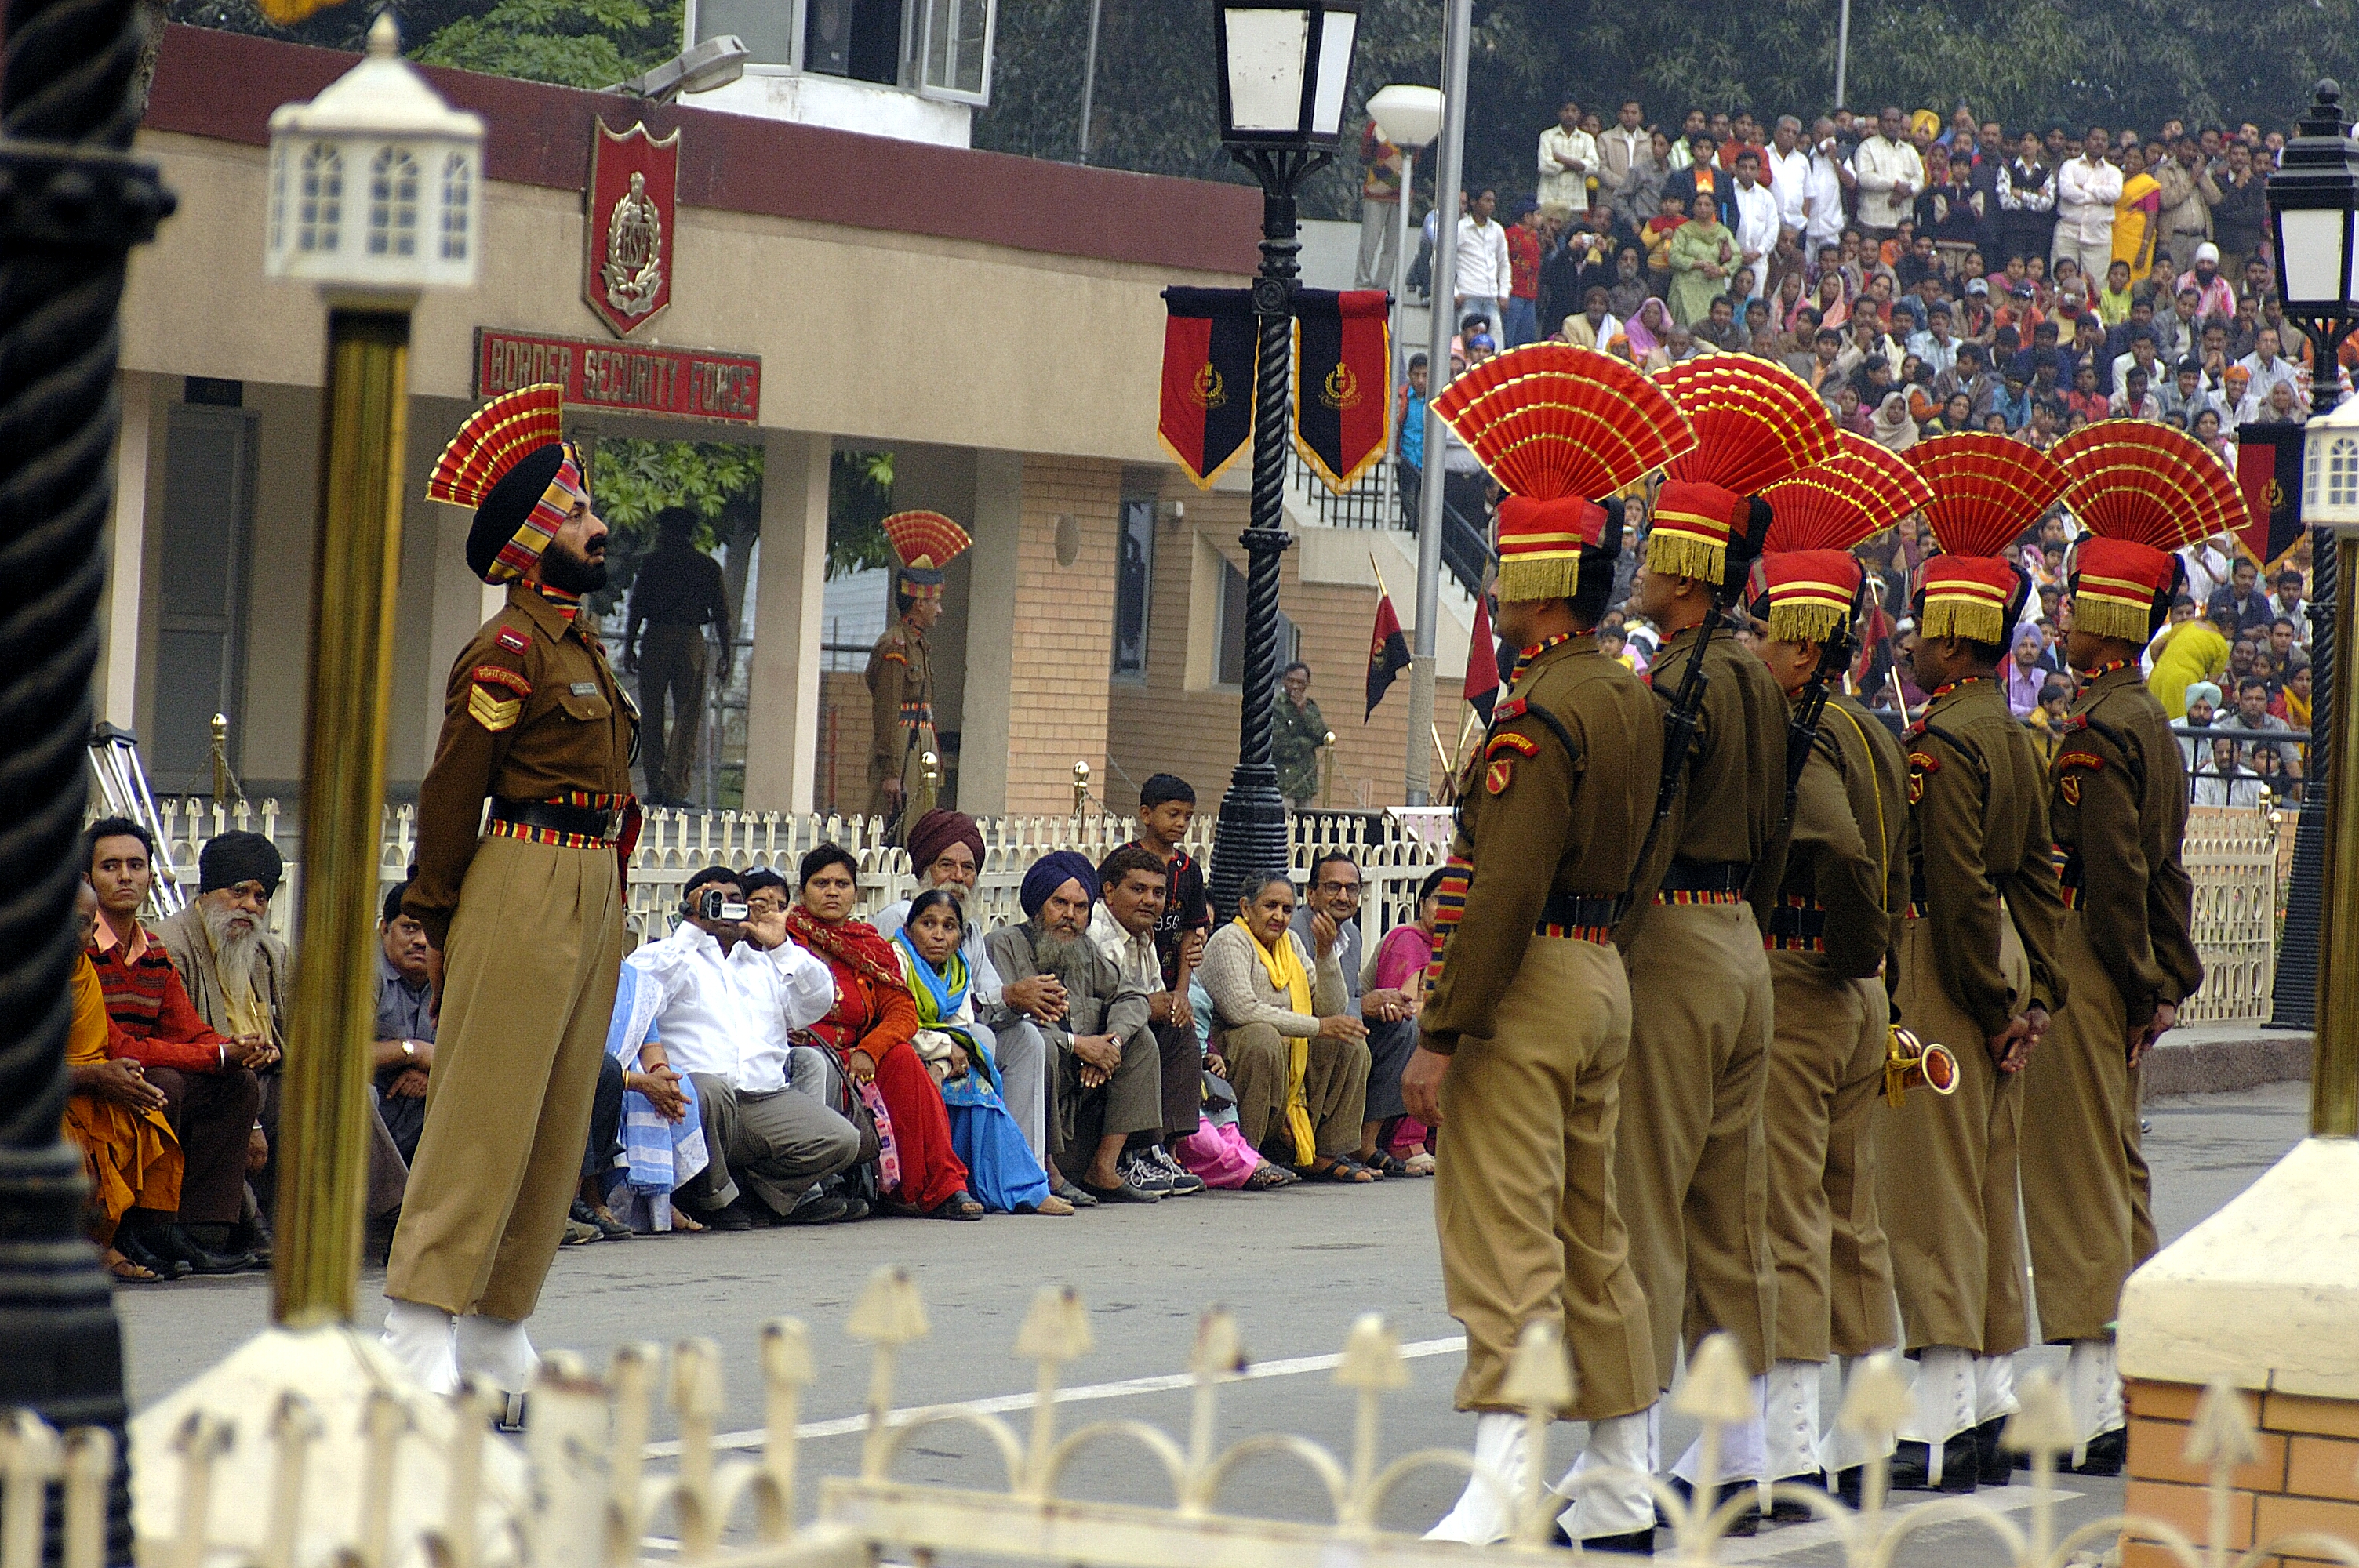 wagah border India and pakistan go ahead with a military ceremony at the wagah border crossing, despite earlier plans to suspend it after a big suicide attack.